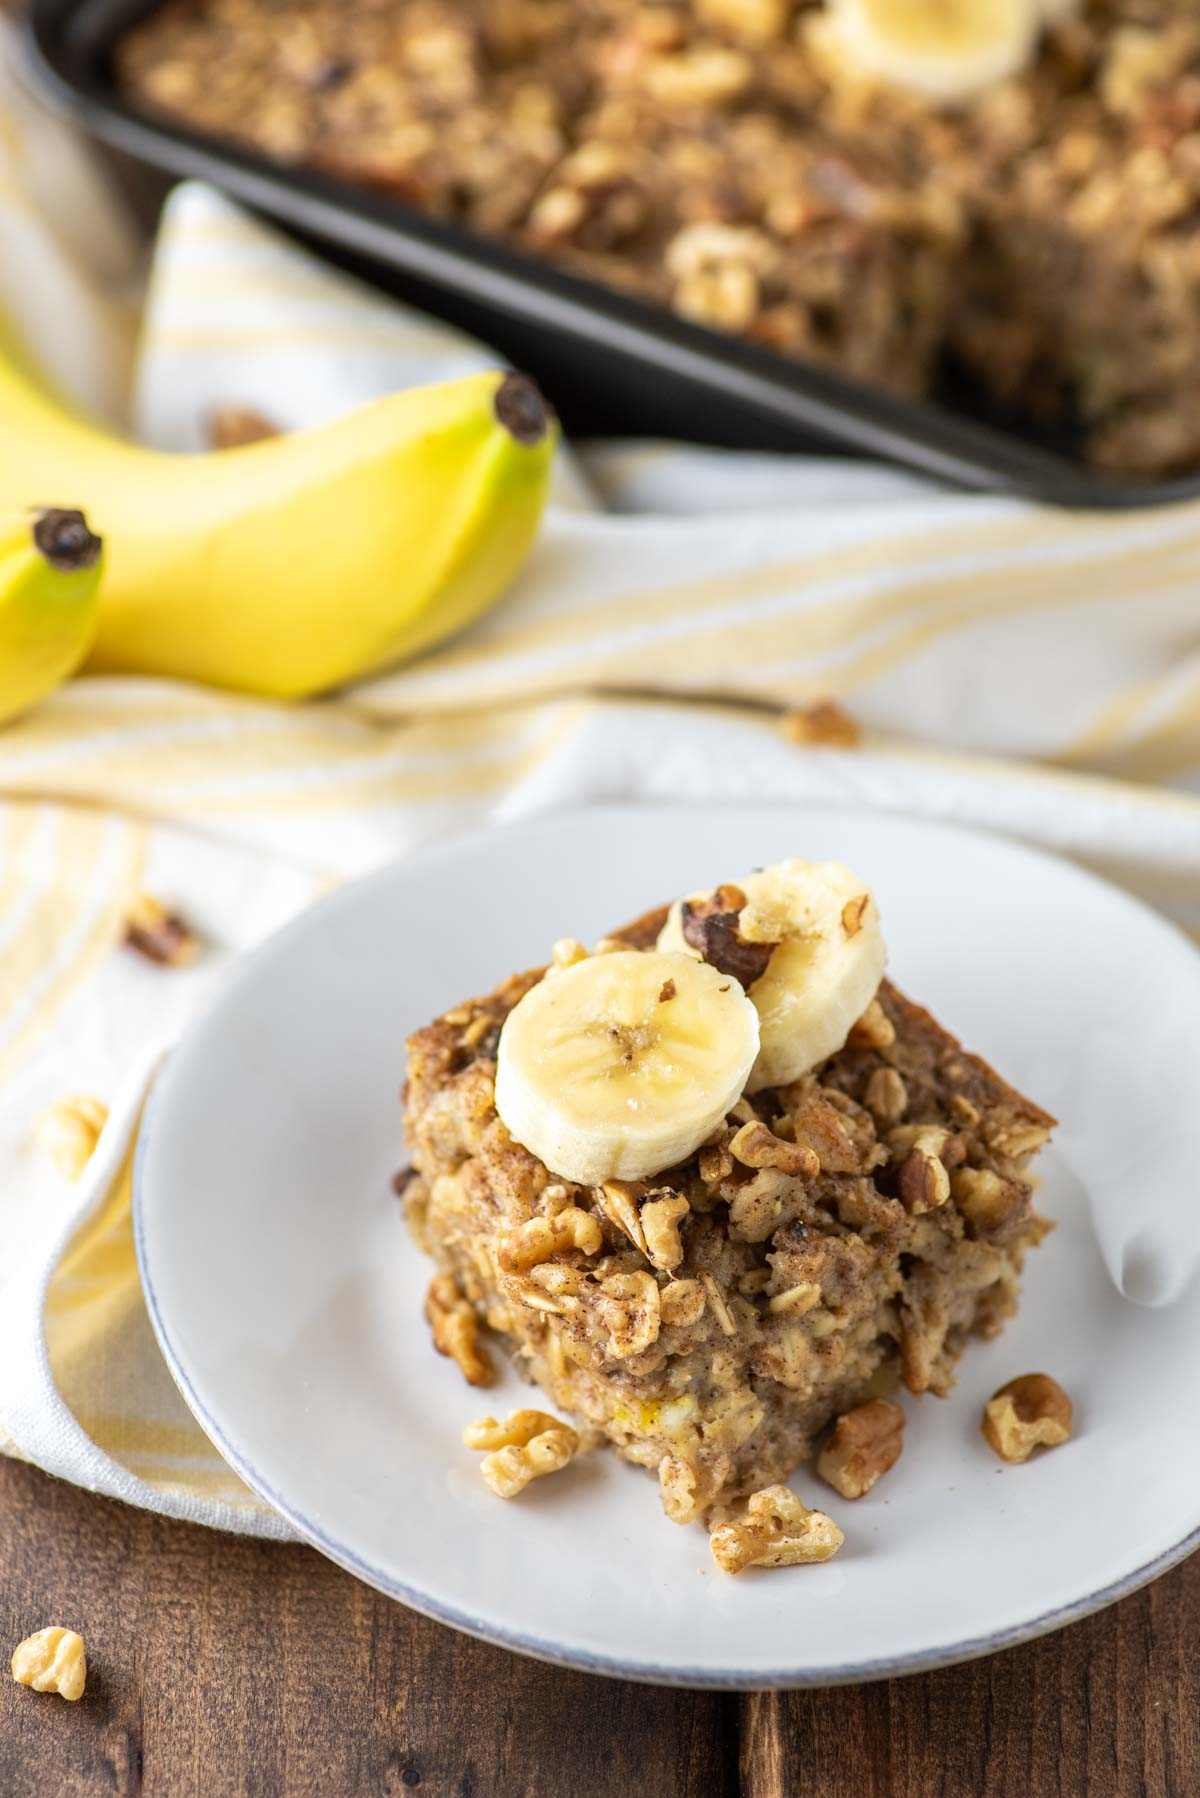 slice of banana baked oatmeal on white plate with pan in behind